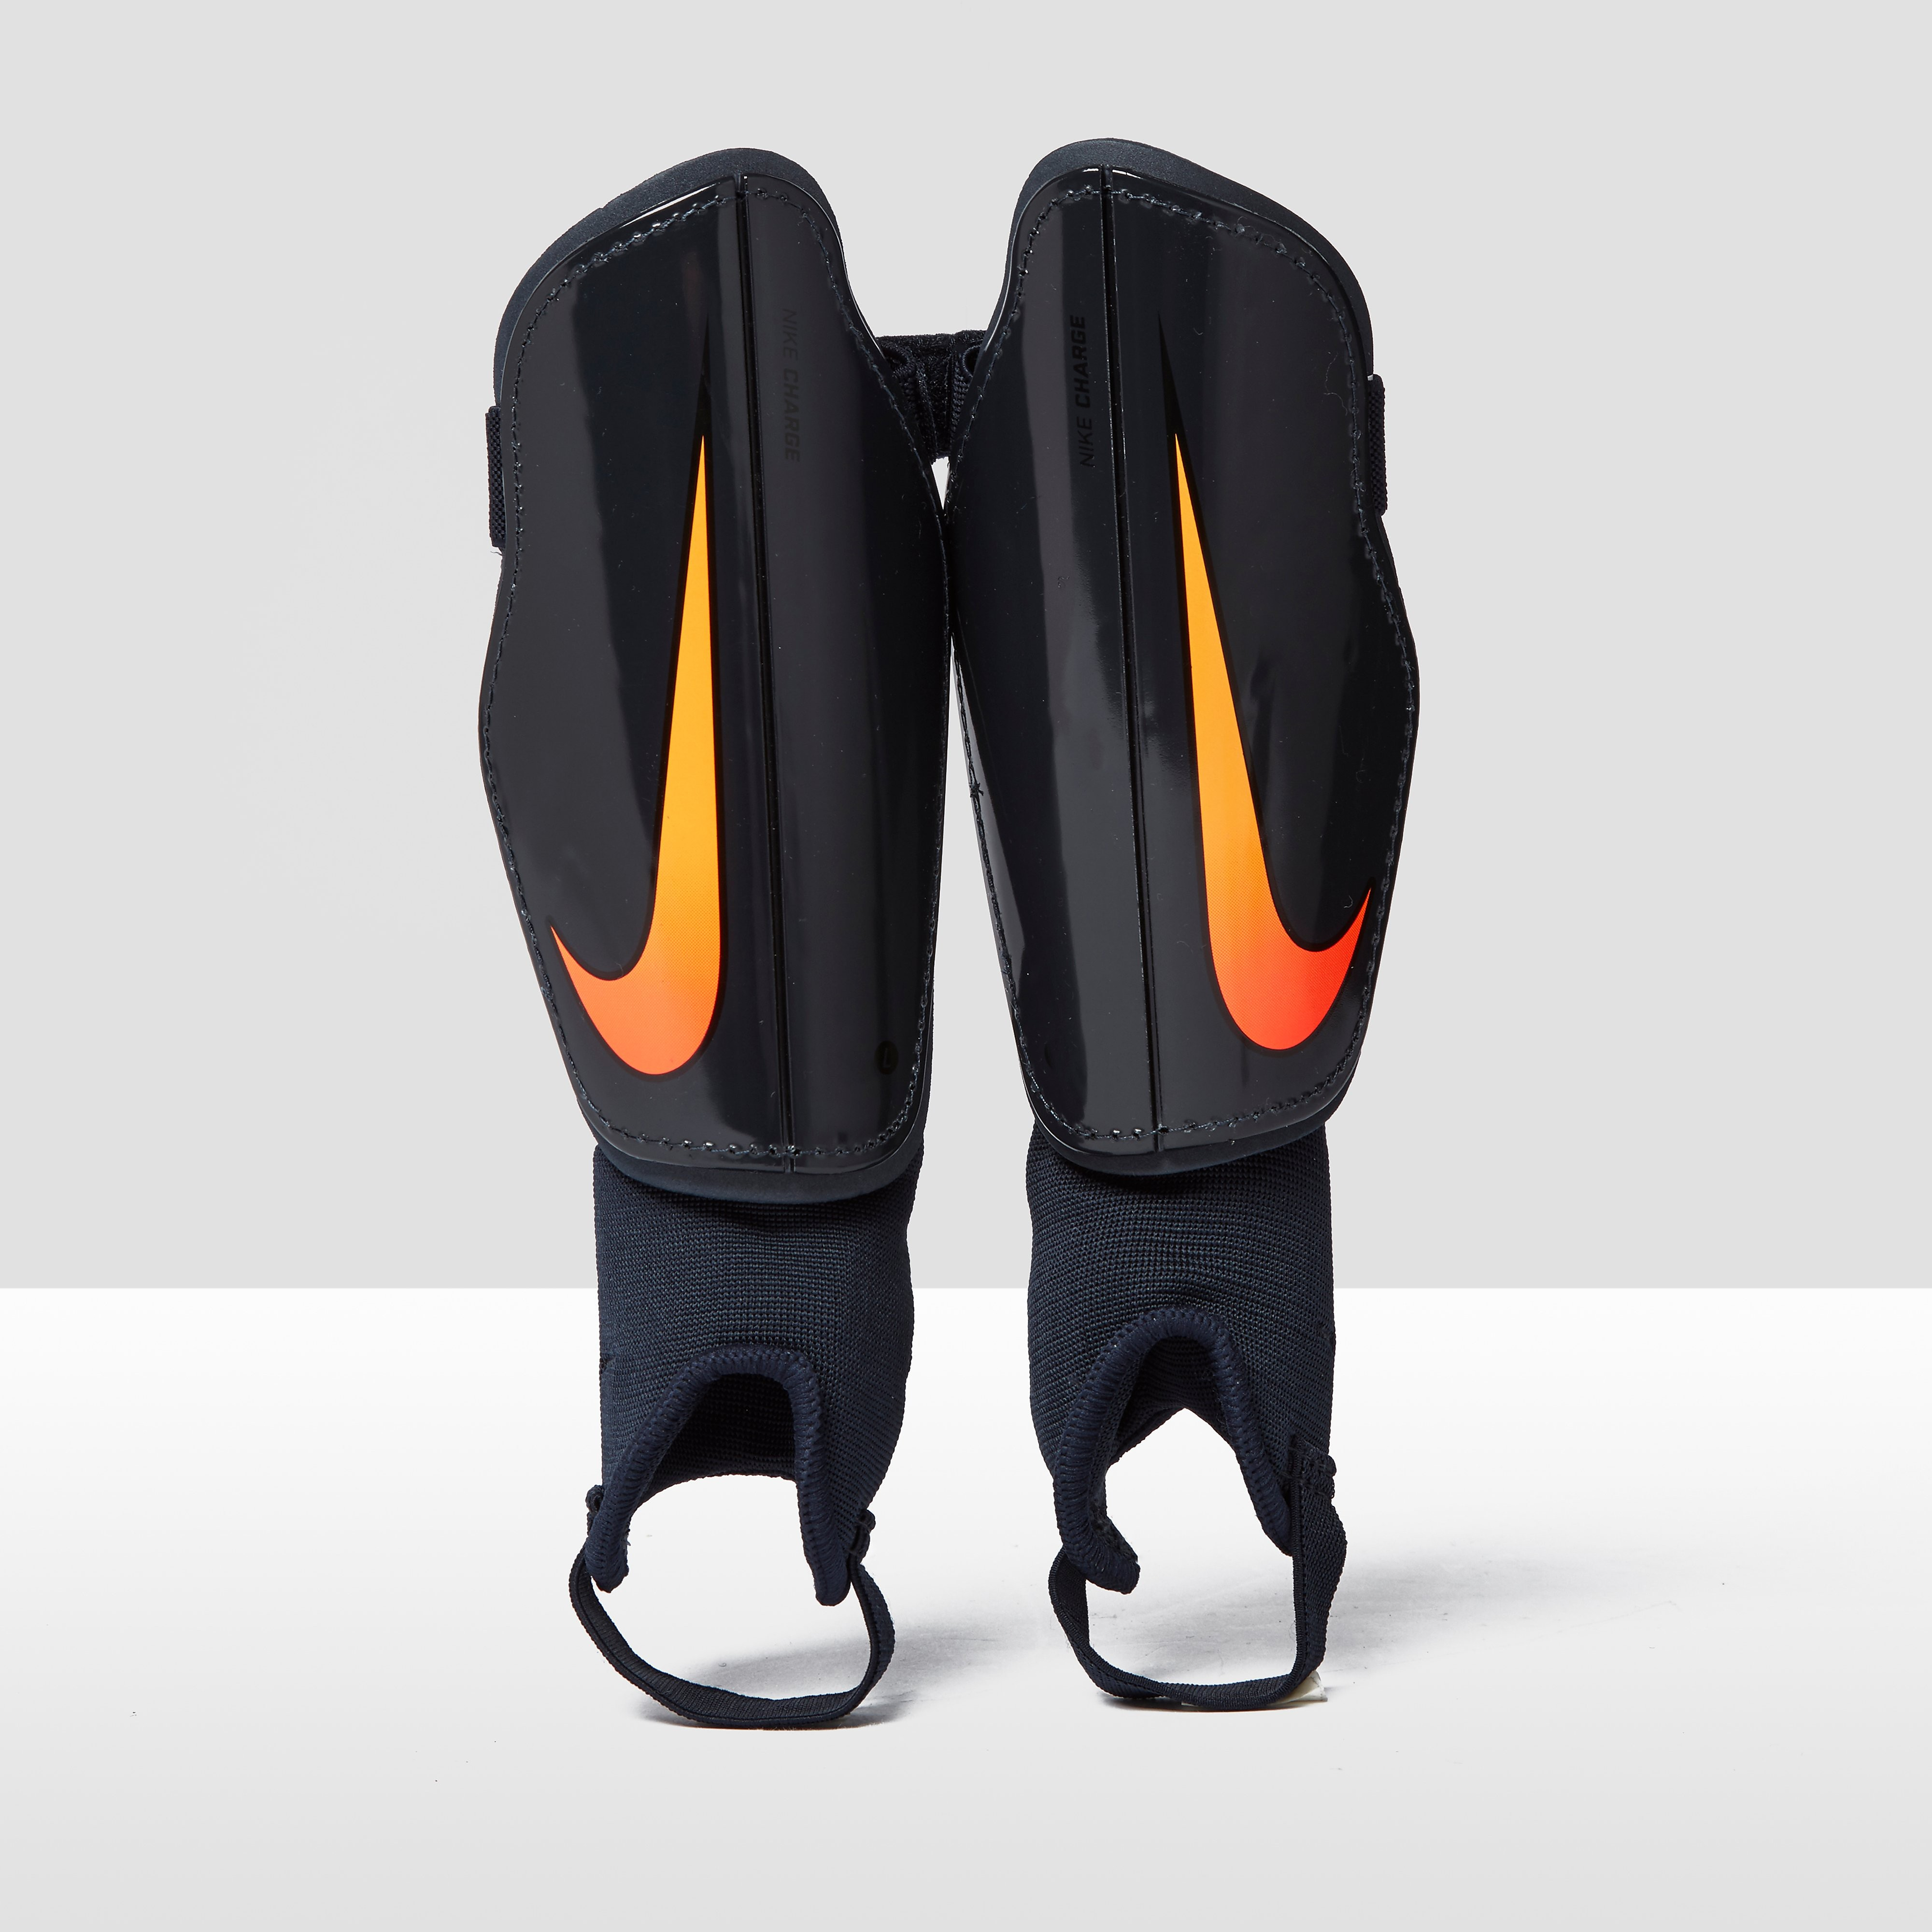 Nike Youth Charge Football Shin Guards